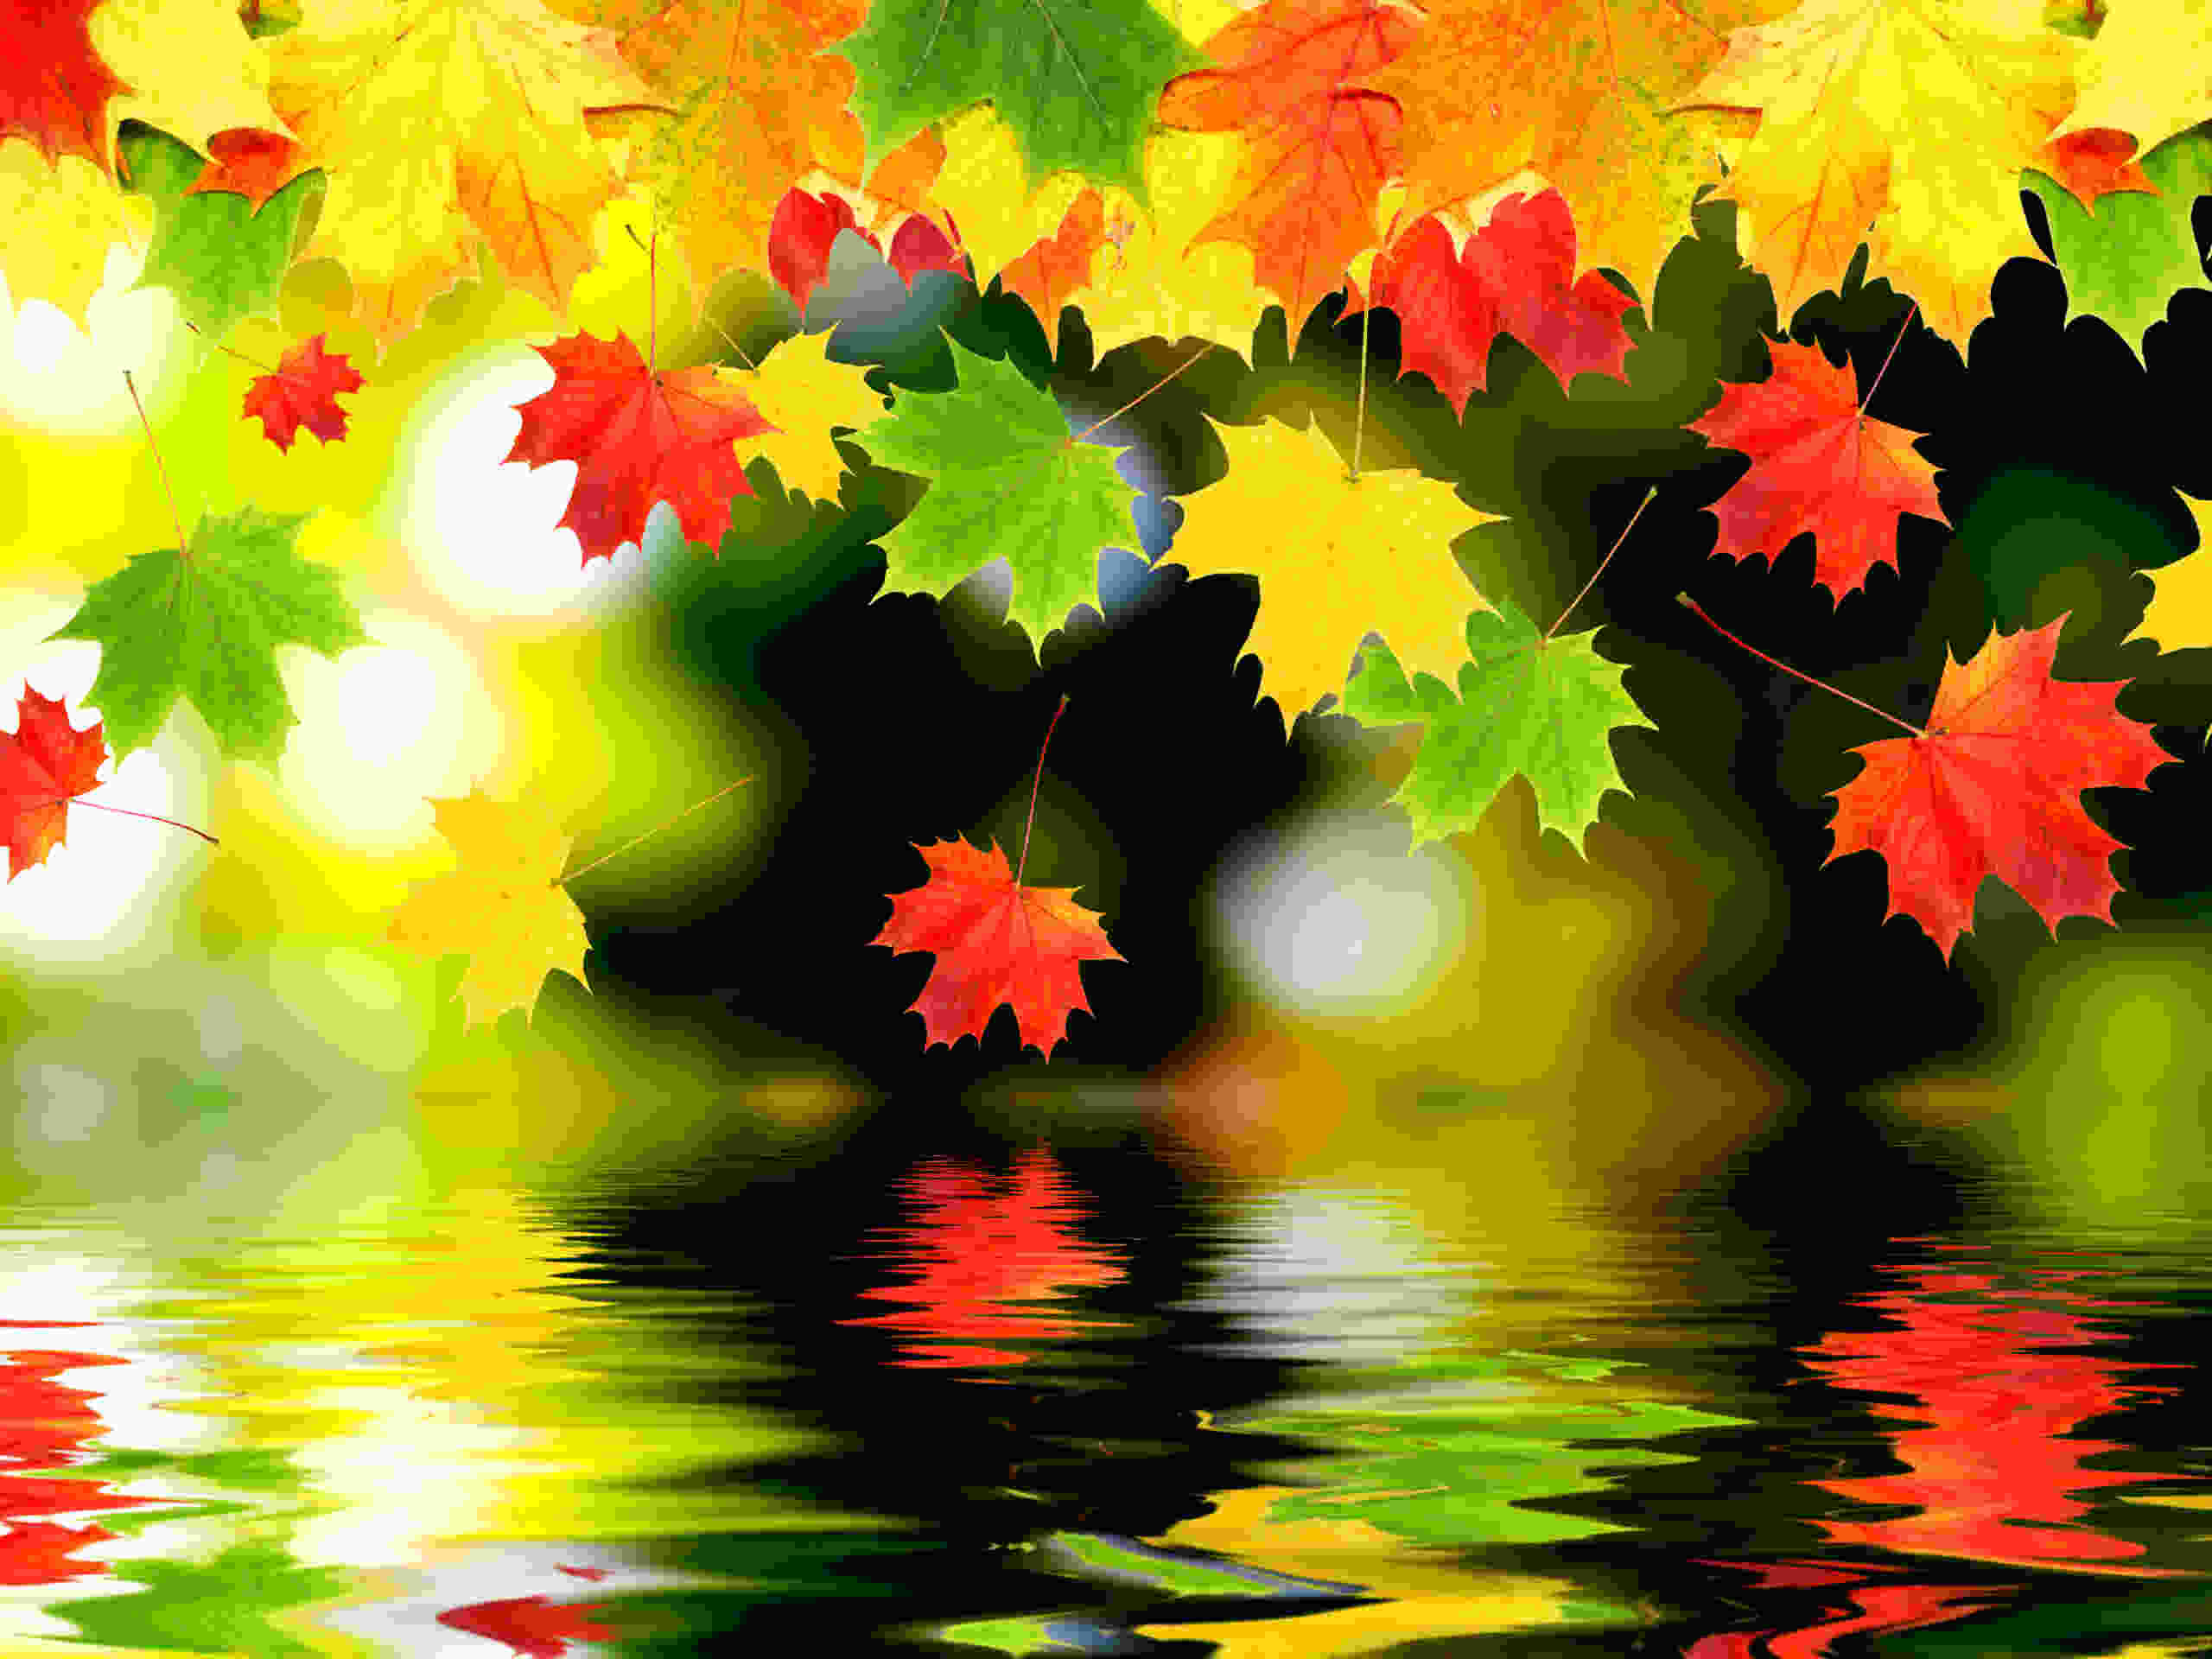 21+ Autumn Backgrounds, Fall Wallpapers, Pictures, Images